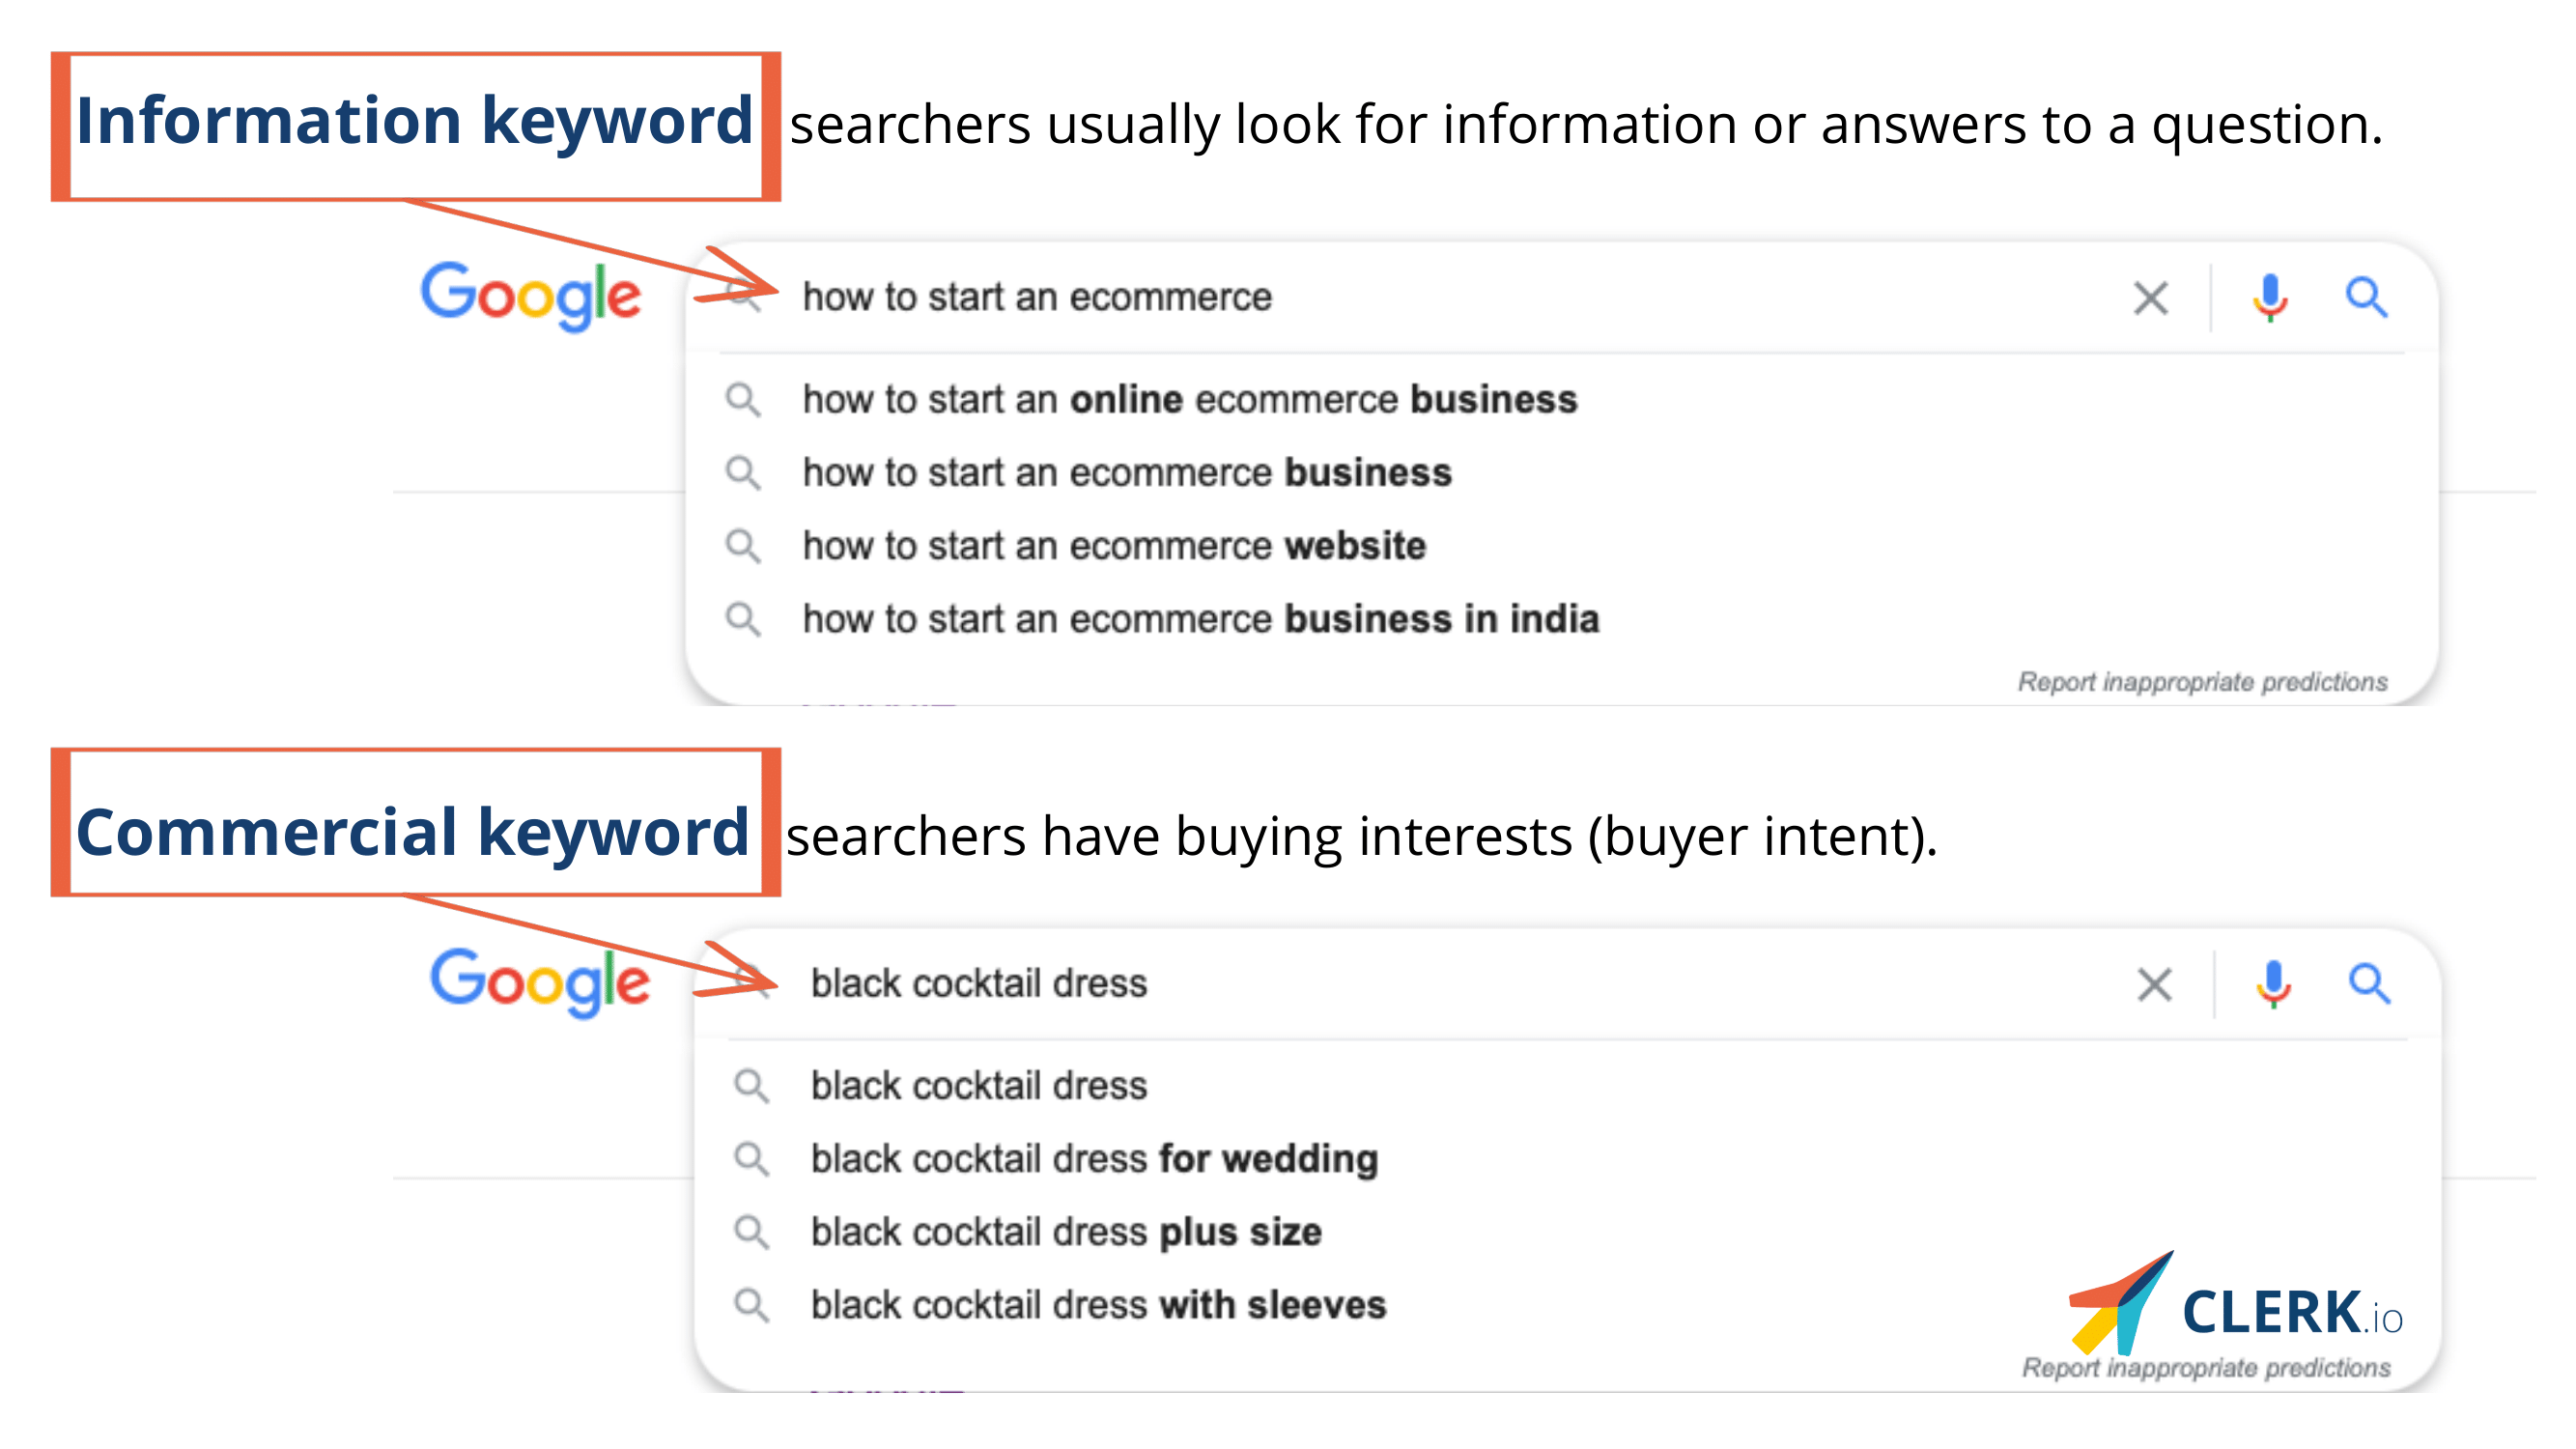 information keyword versus commercial keyword